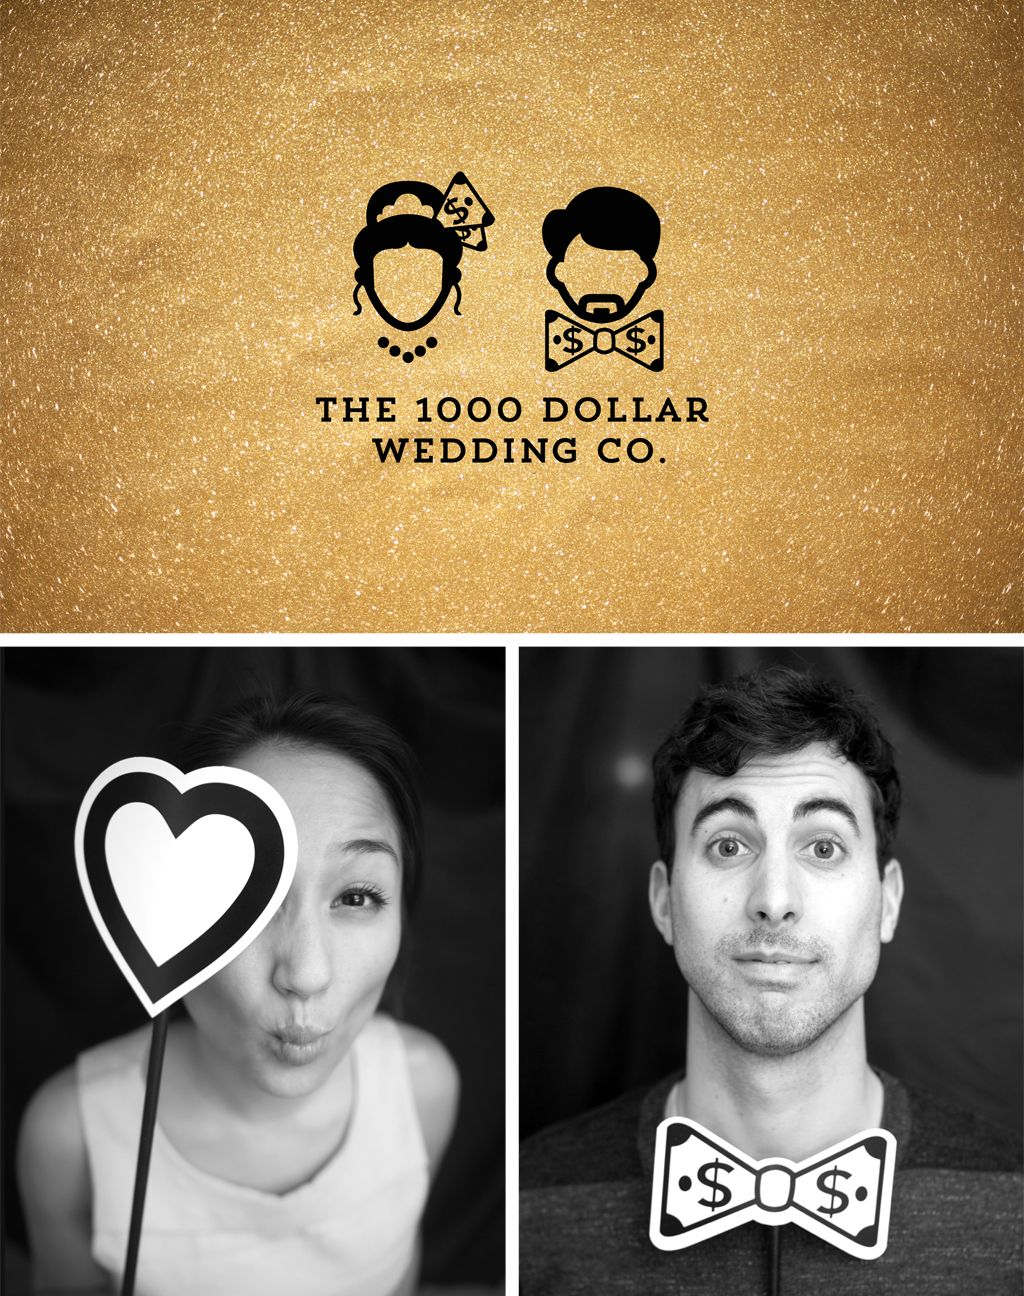 1000 Dollar Wedding Co Logo Mascot Design For Event Planning Branding With Gold Glitz And Glitter By Fuze Branding Branding Mascot Design Visual Branding